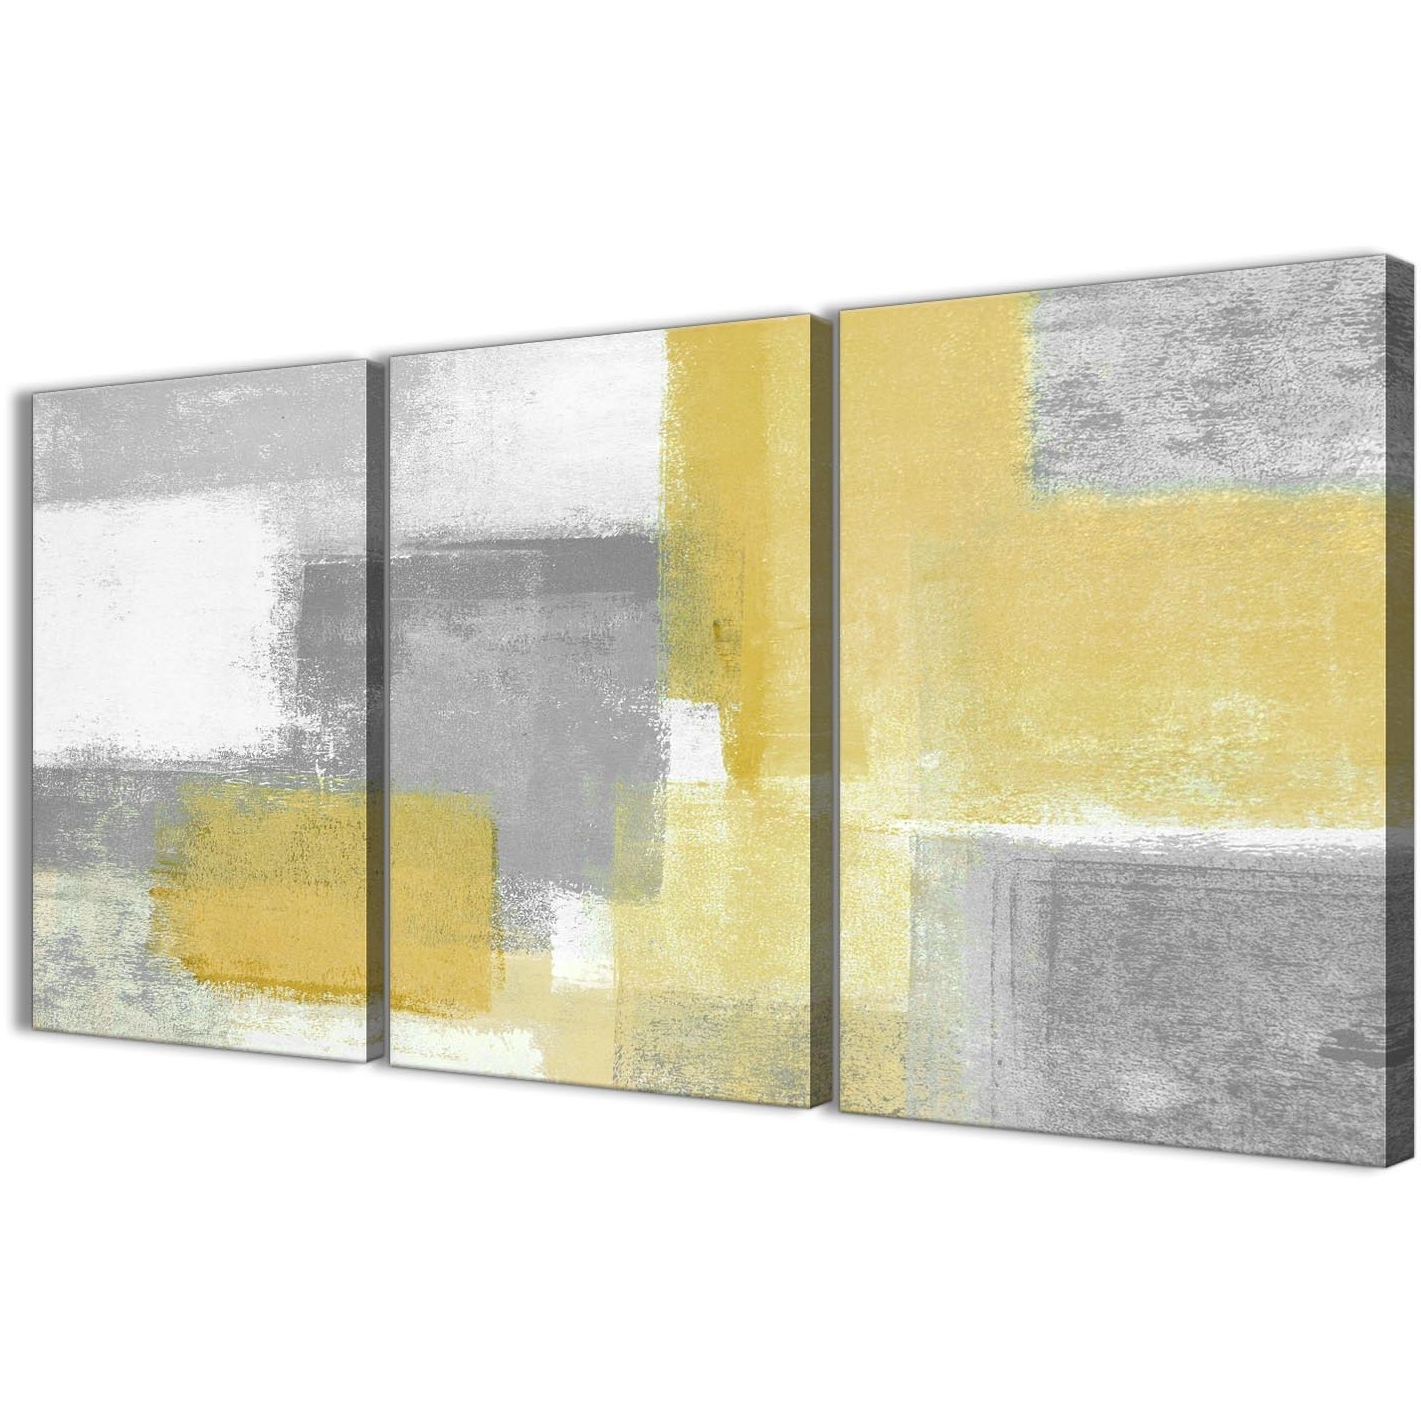 3 Panel Mustard Yellow Grey Kitchen Canvas Wall Art Decor – Abstract Throughout Favorite Grey Wall Art (Gallery 4 of 20)